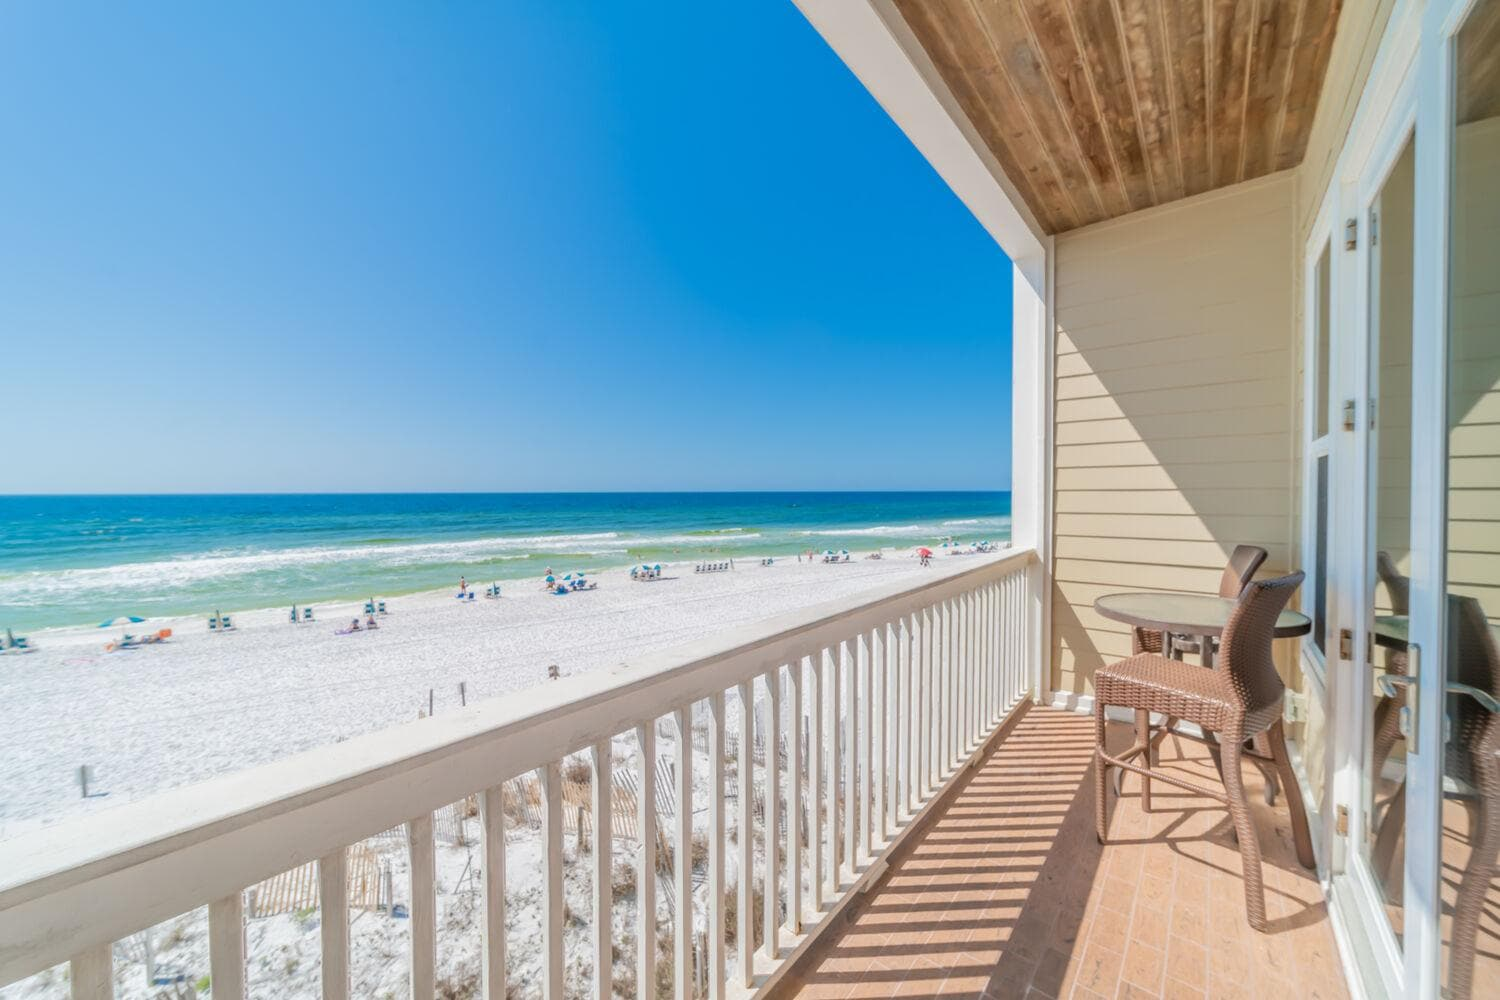 Property Image 1 - Cute Condo With Oceanfront Views